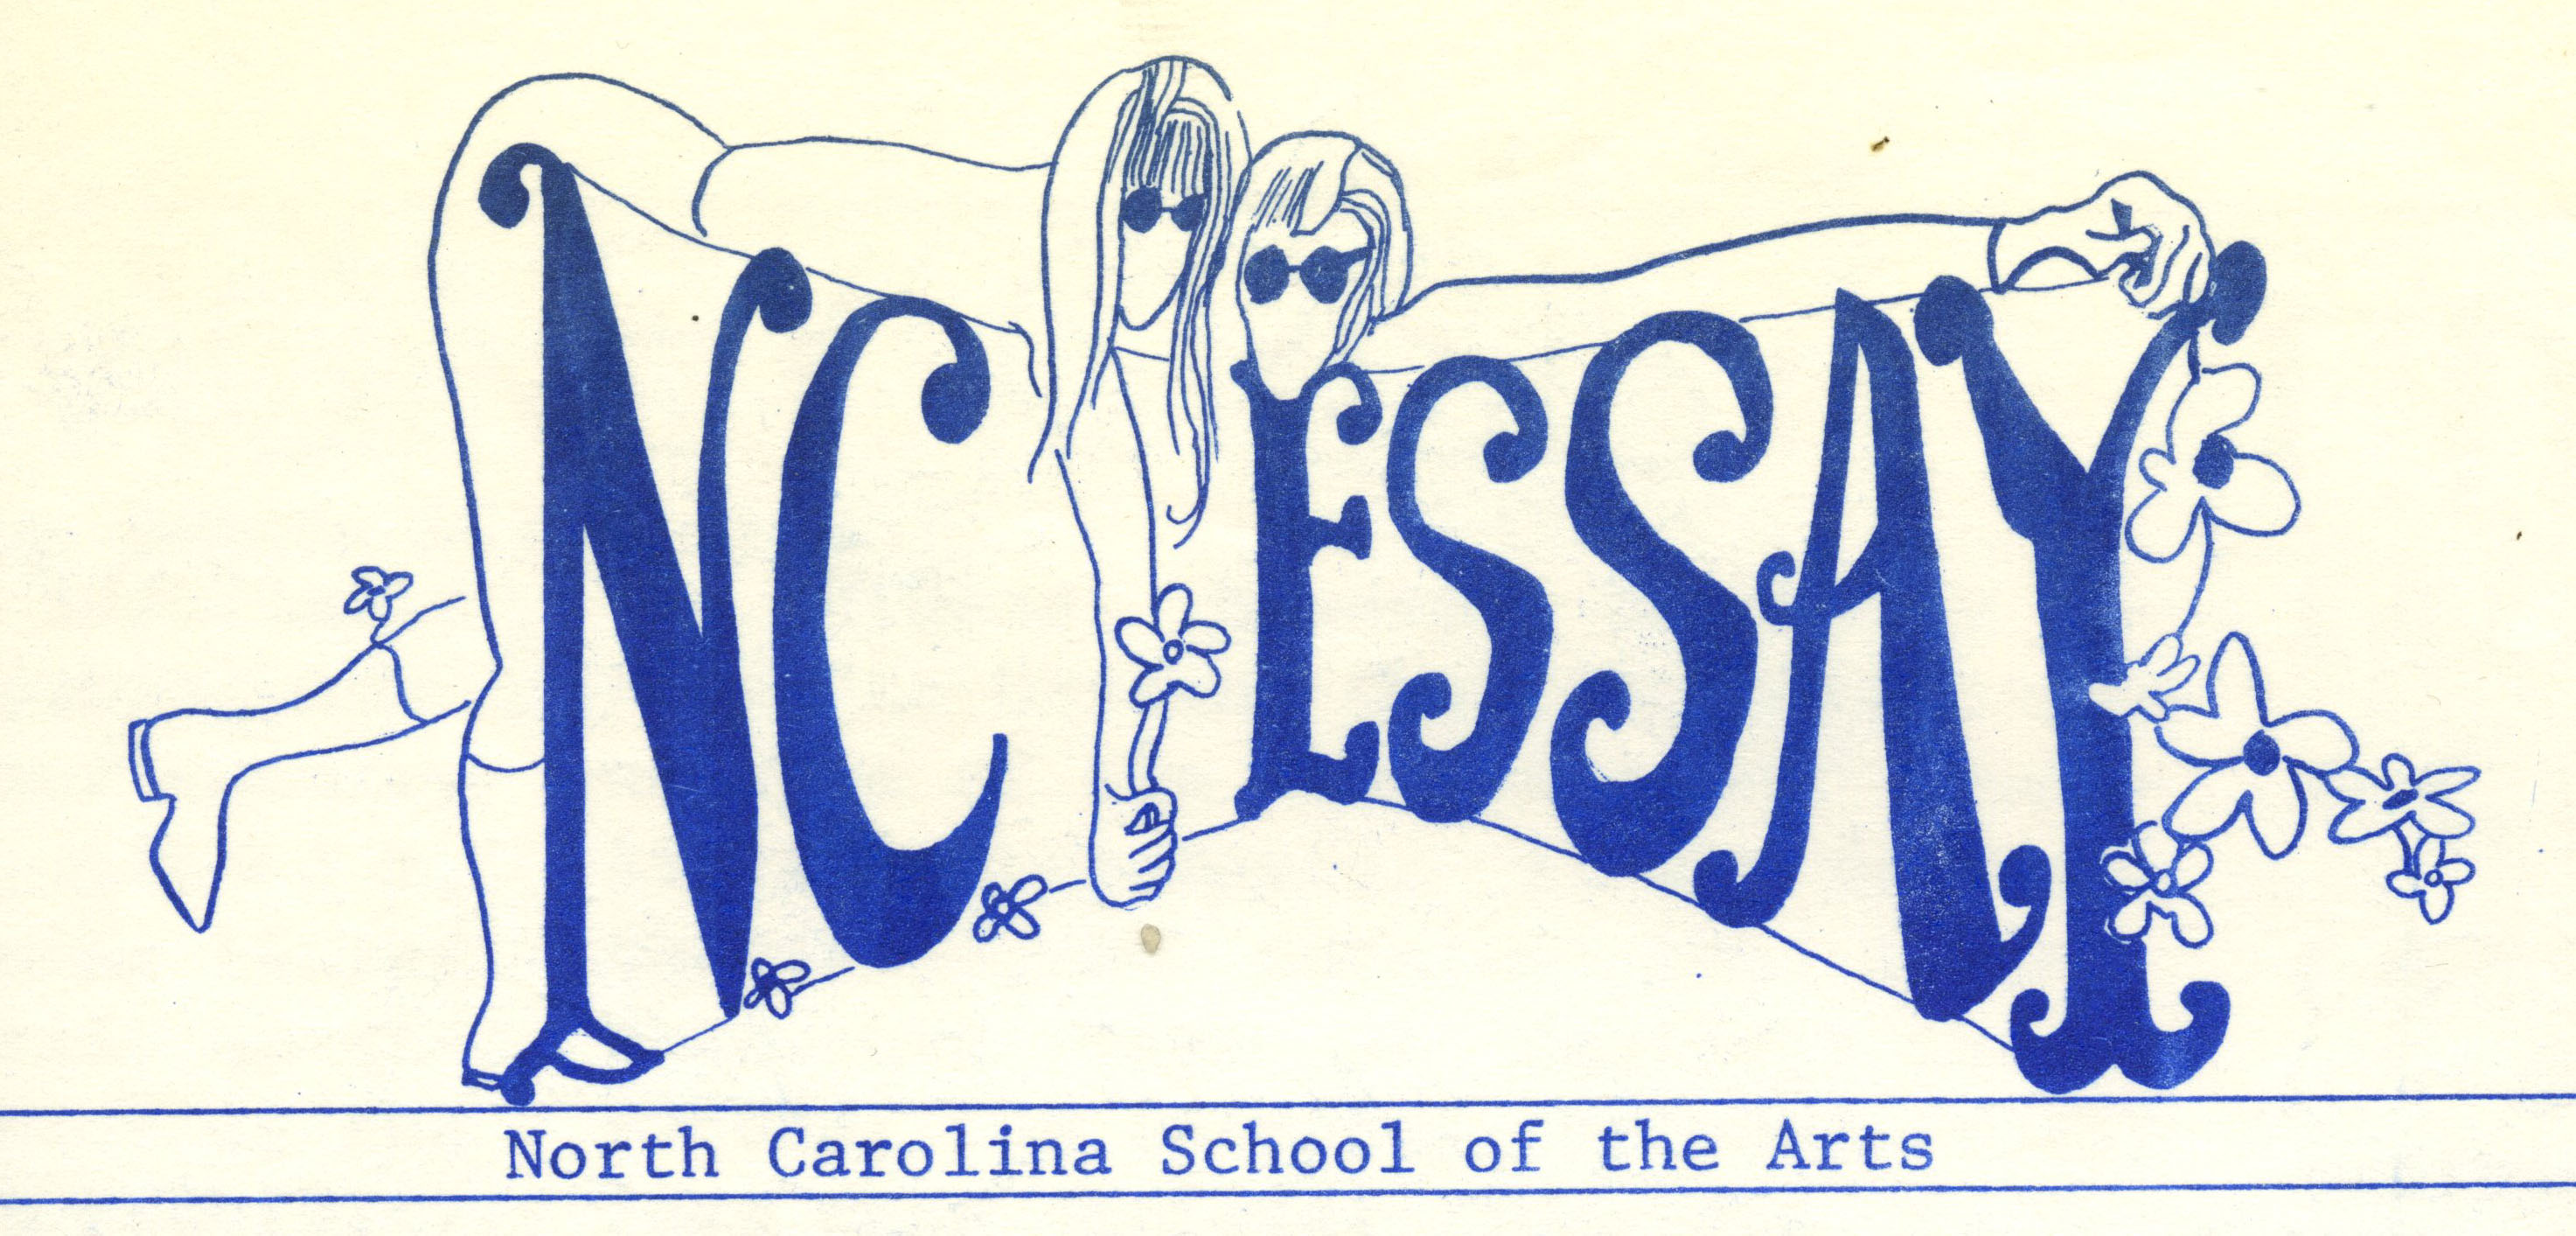 Logo reads N.C. Essay. Drawing of two people leaning over letters, with flowers around the edges. Text below reads North Carolina School of the Arts.